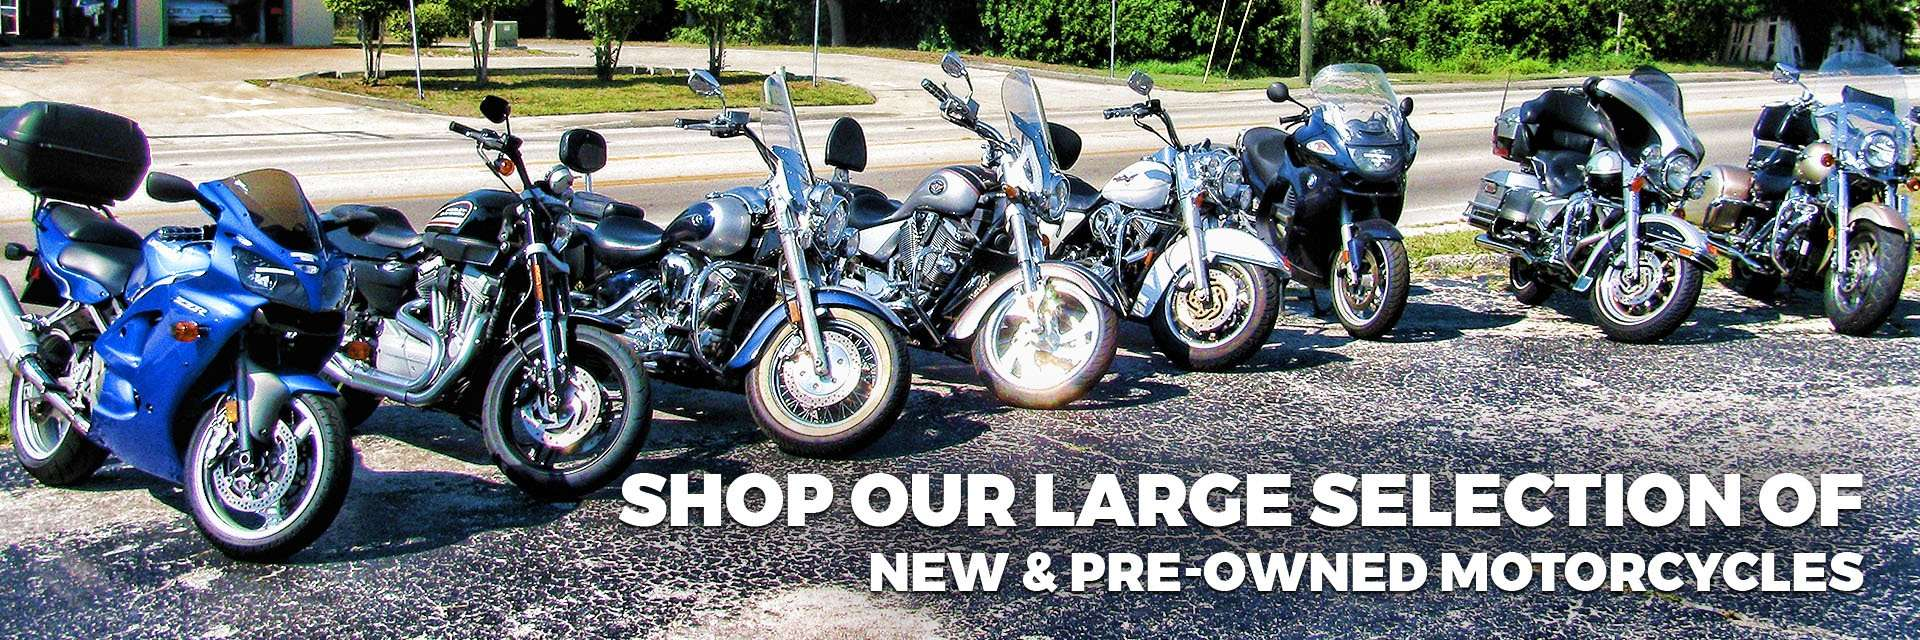 Shop our large selection of new & pre-owned motorcycles for sale at Hap's Cycle Sales in Sarasota, FL